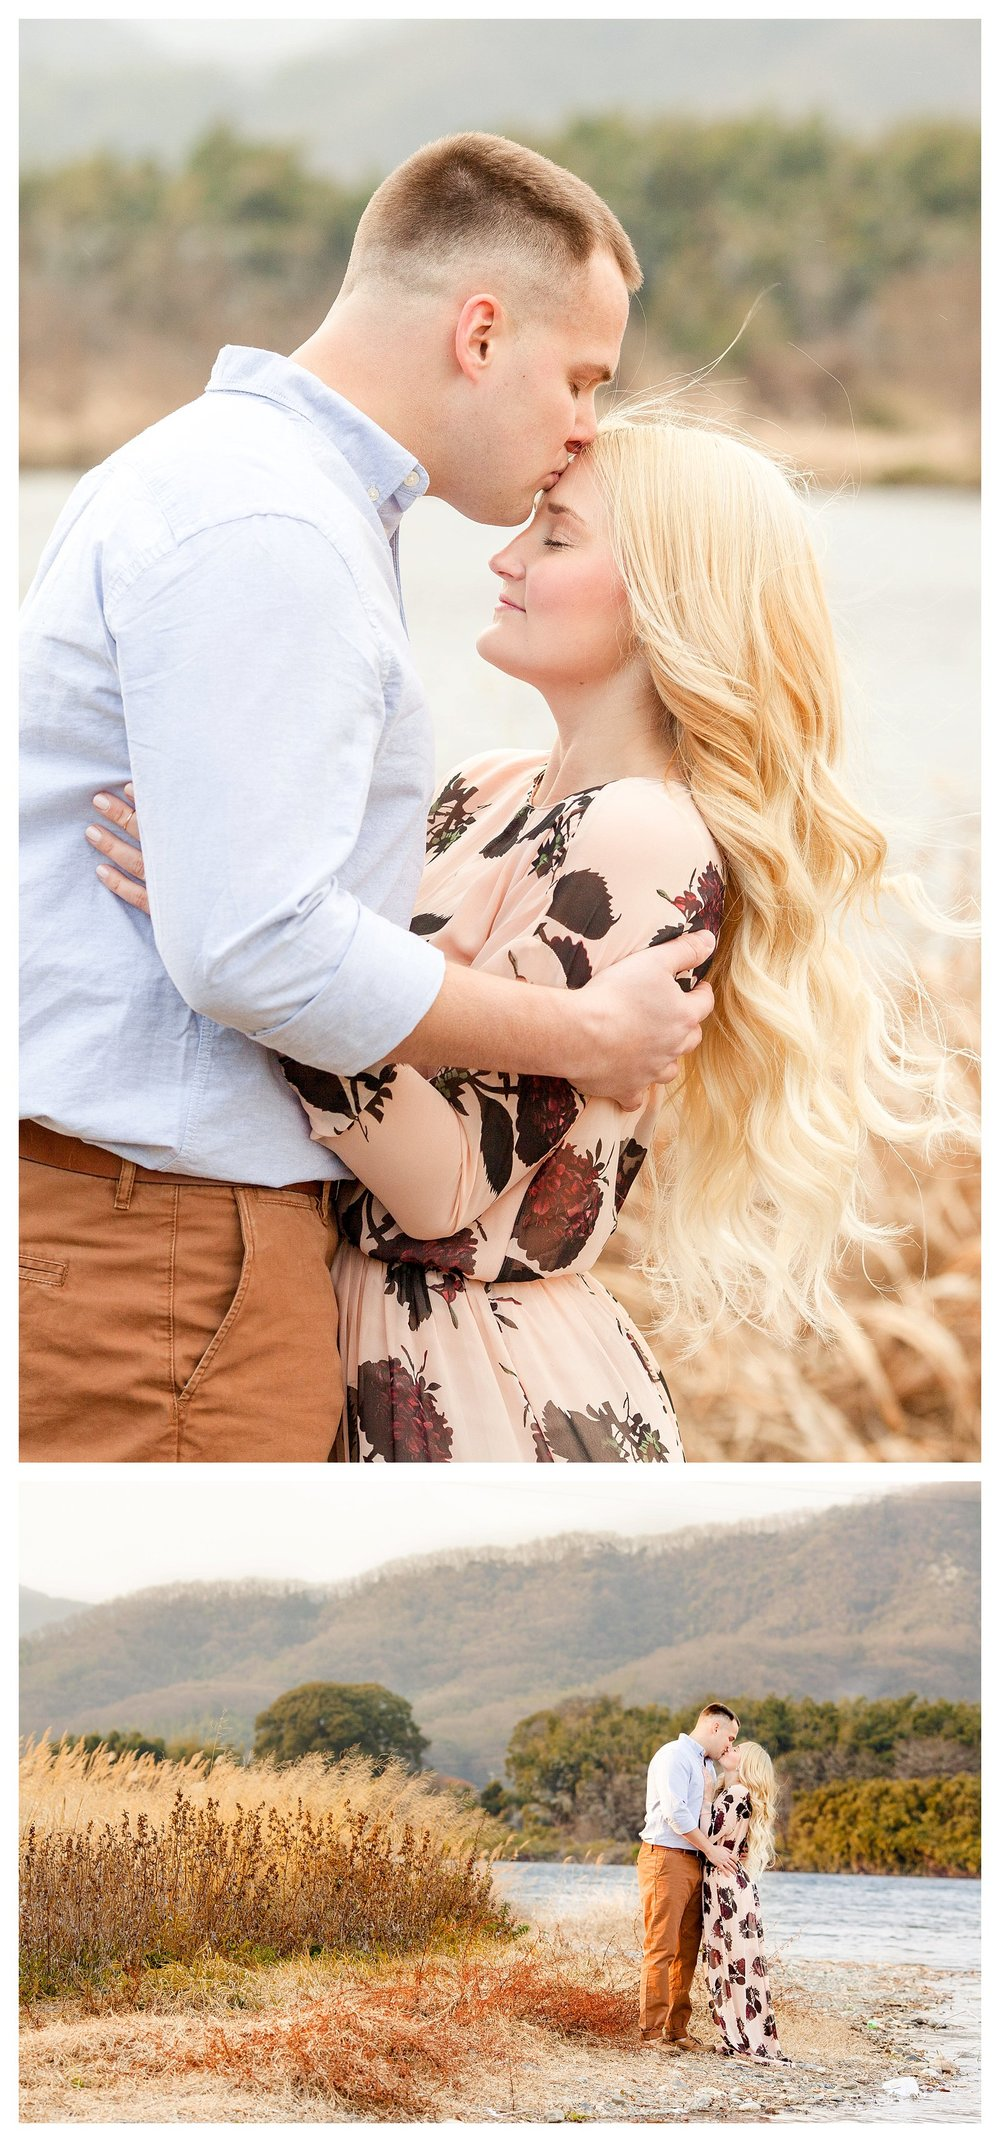 engagement_photos_photographer_Saint_Louis_MO_Kansas_City_Missouri_Springfield_Lake_Ozark_Scenic_Destination_Videography_Videographer_0333.jpg